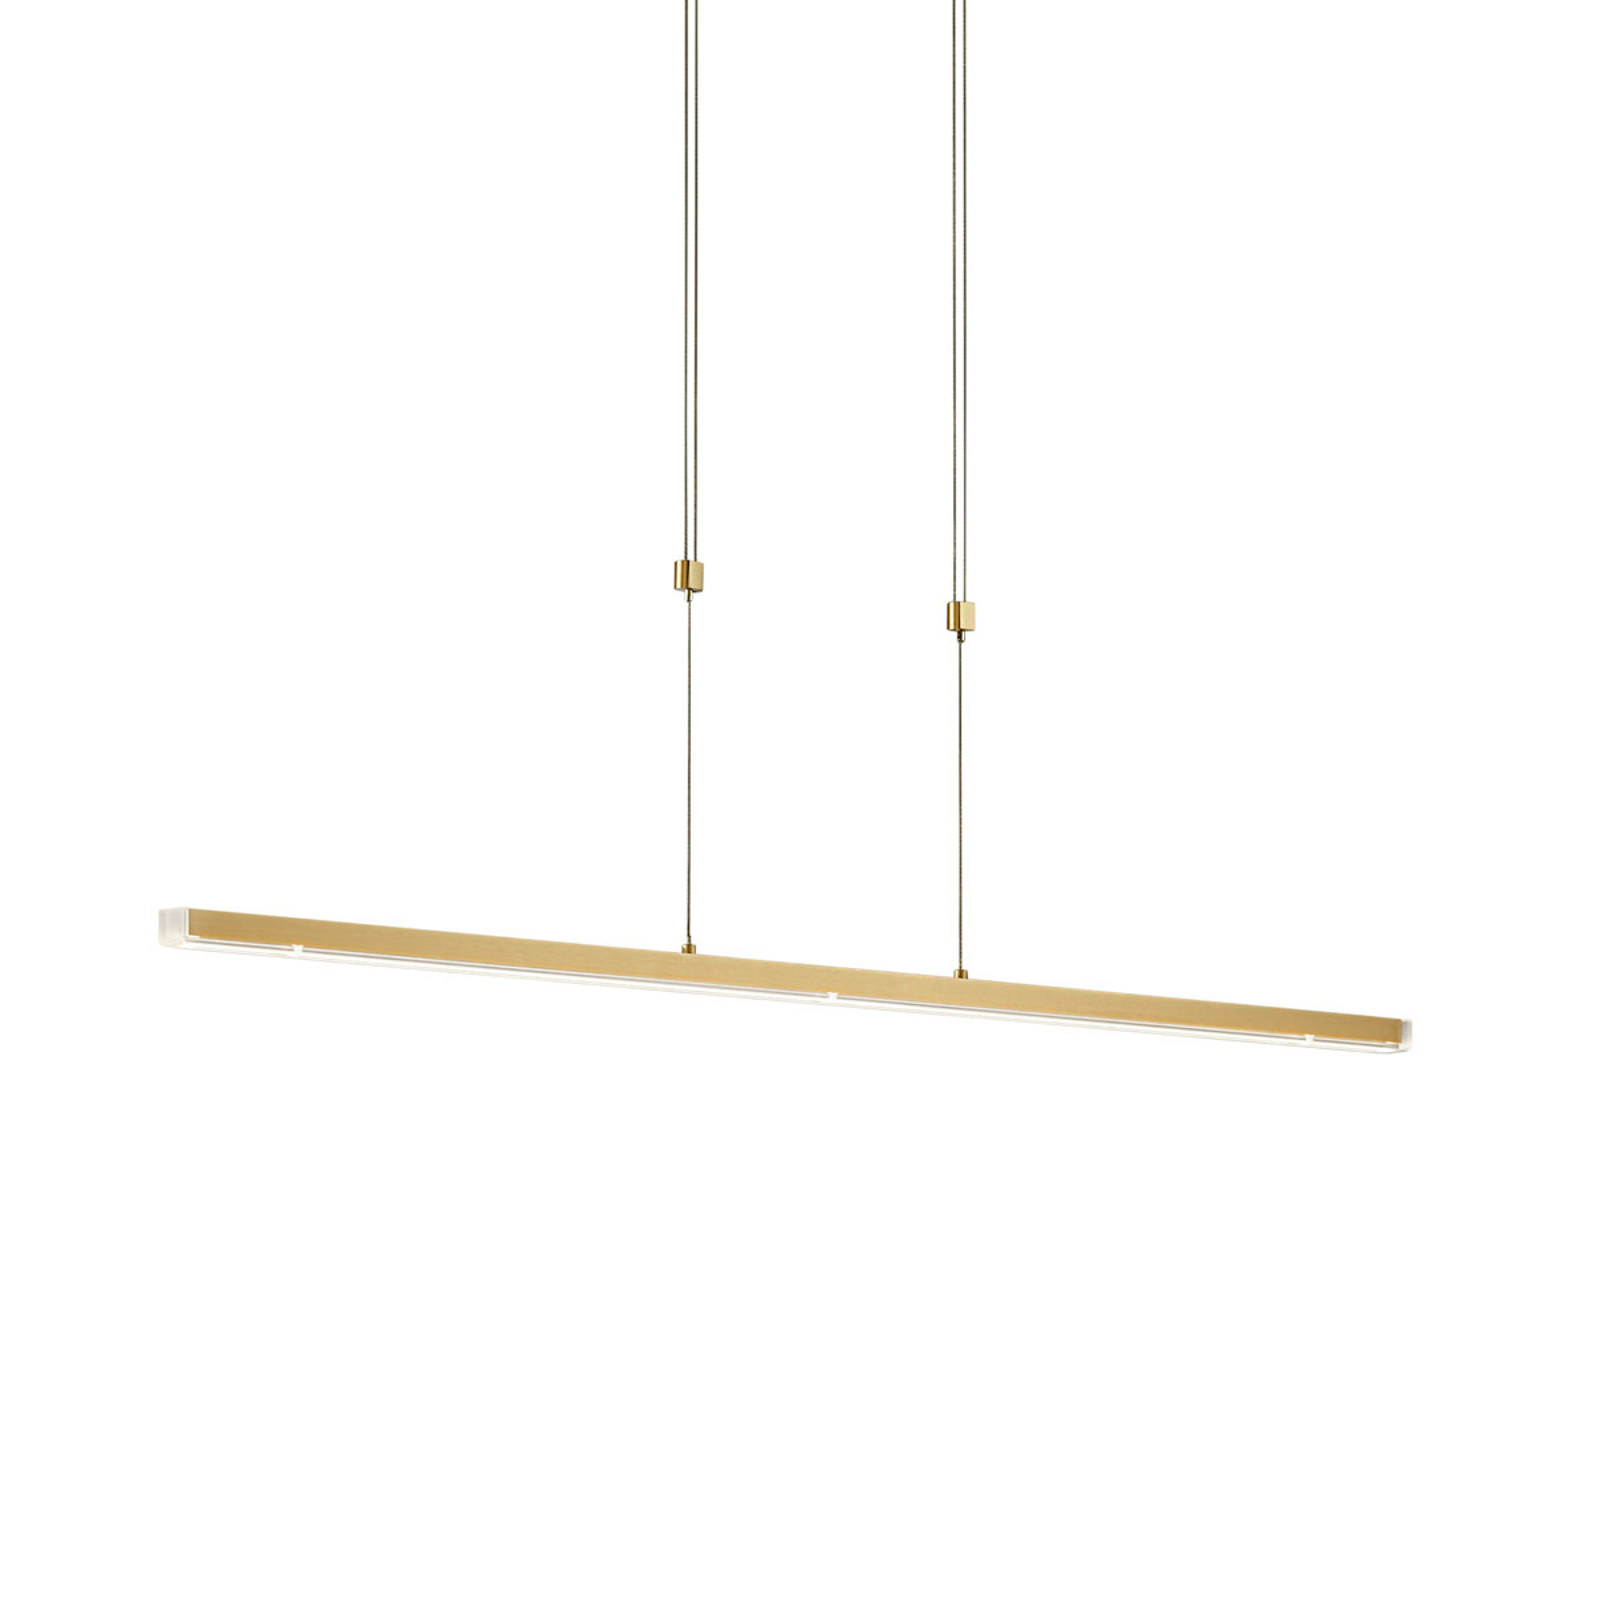 Suspension LED Ella, 90 cm, hauteur réglable